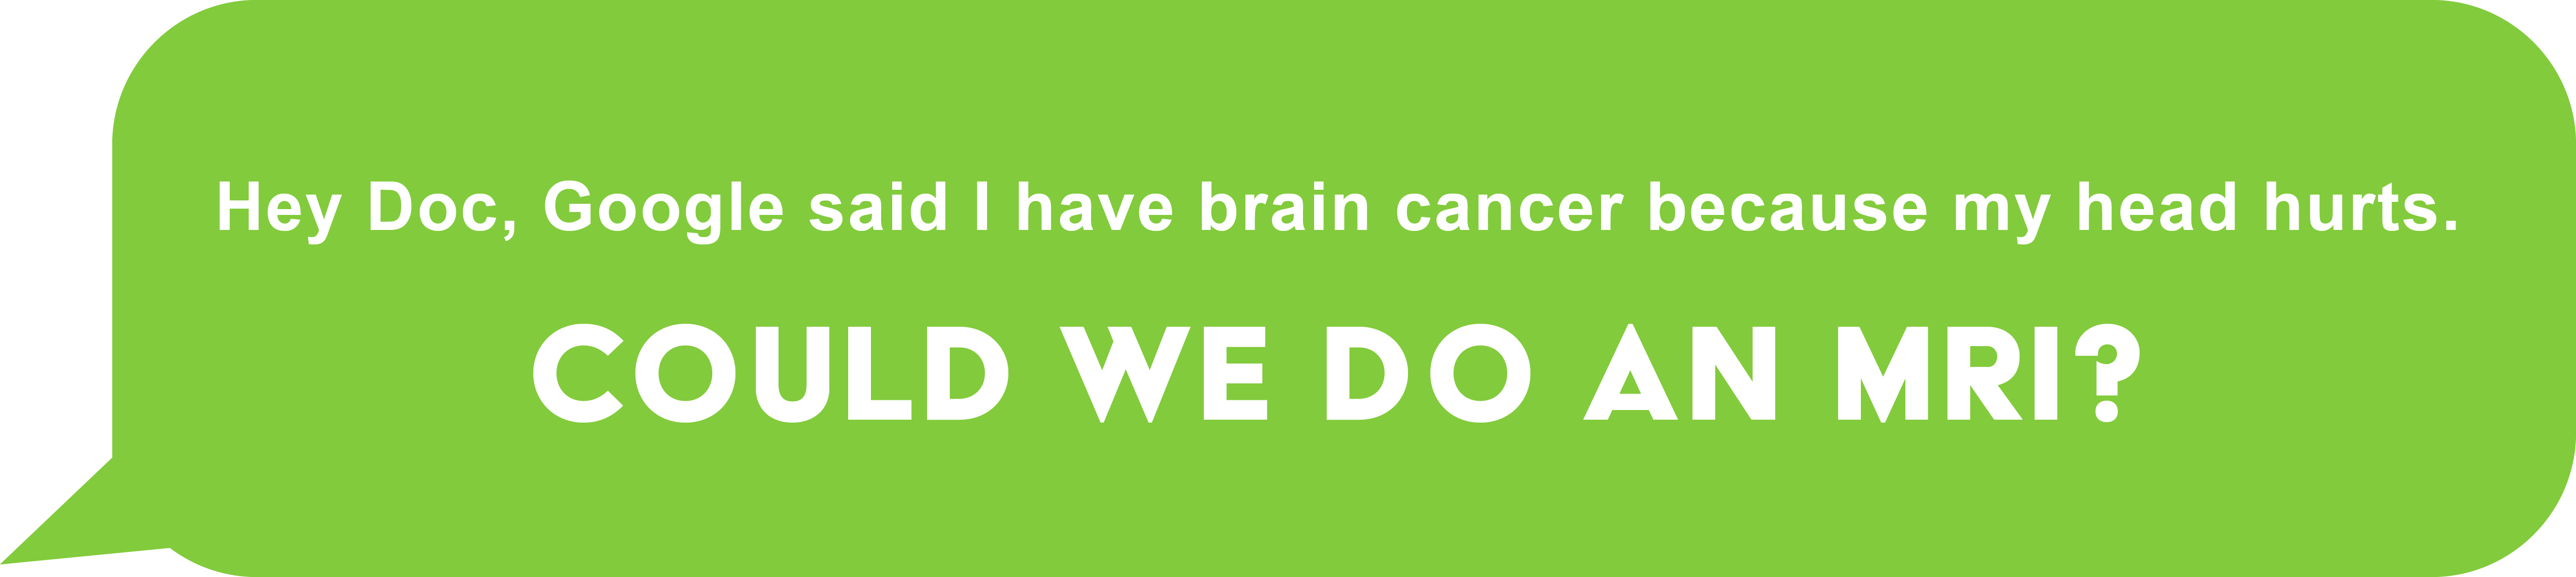 Hey Doc, Google said I have brain cancer because my head hurts. Could we do an MRI?